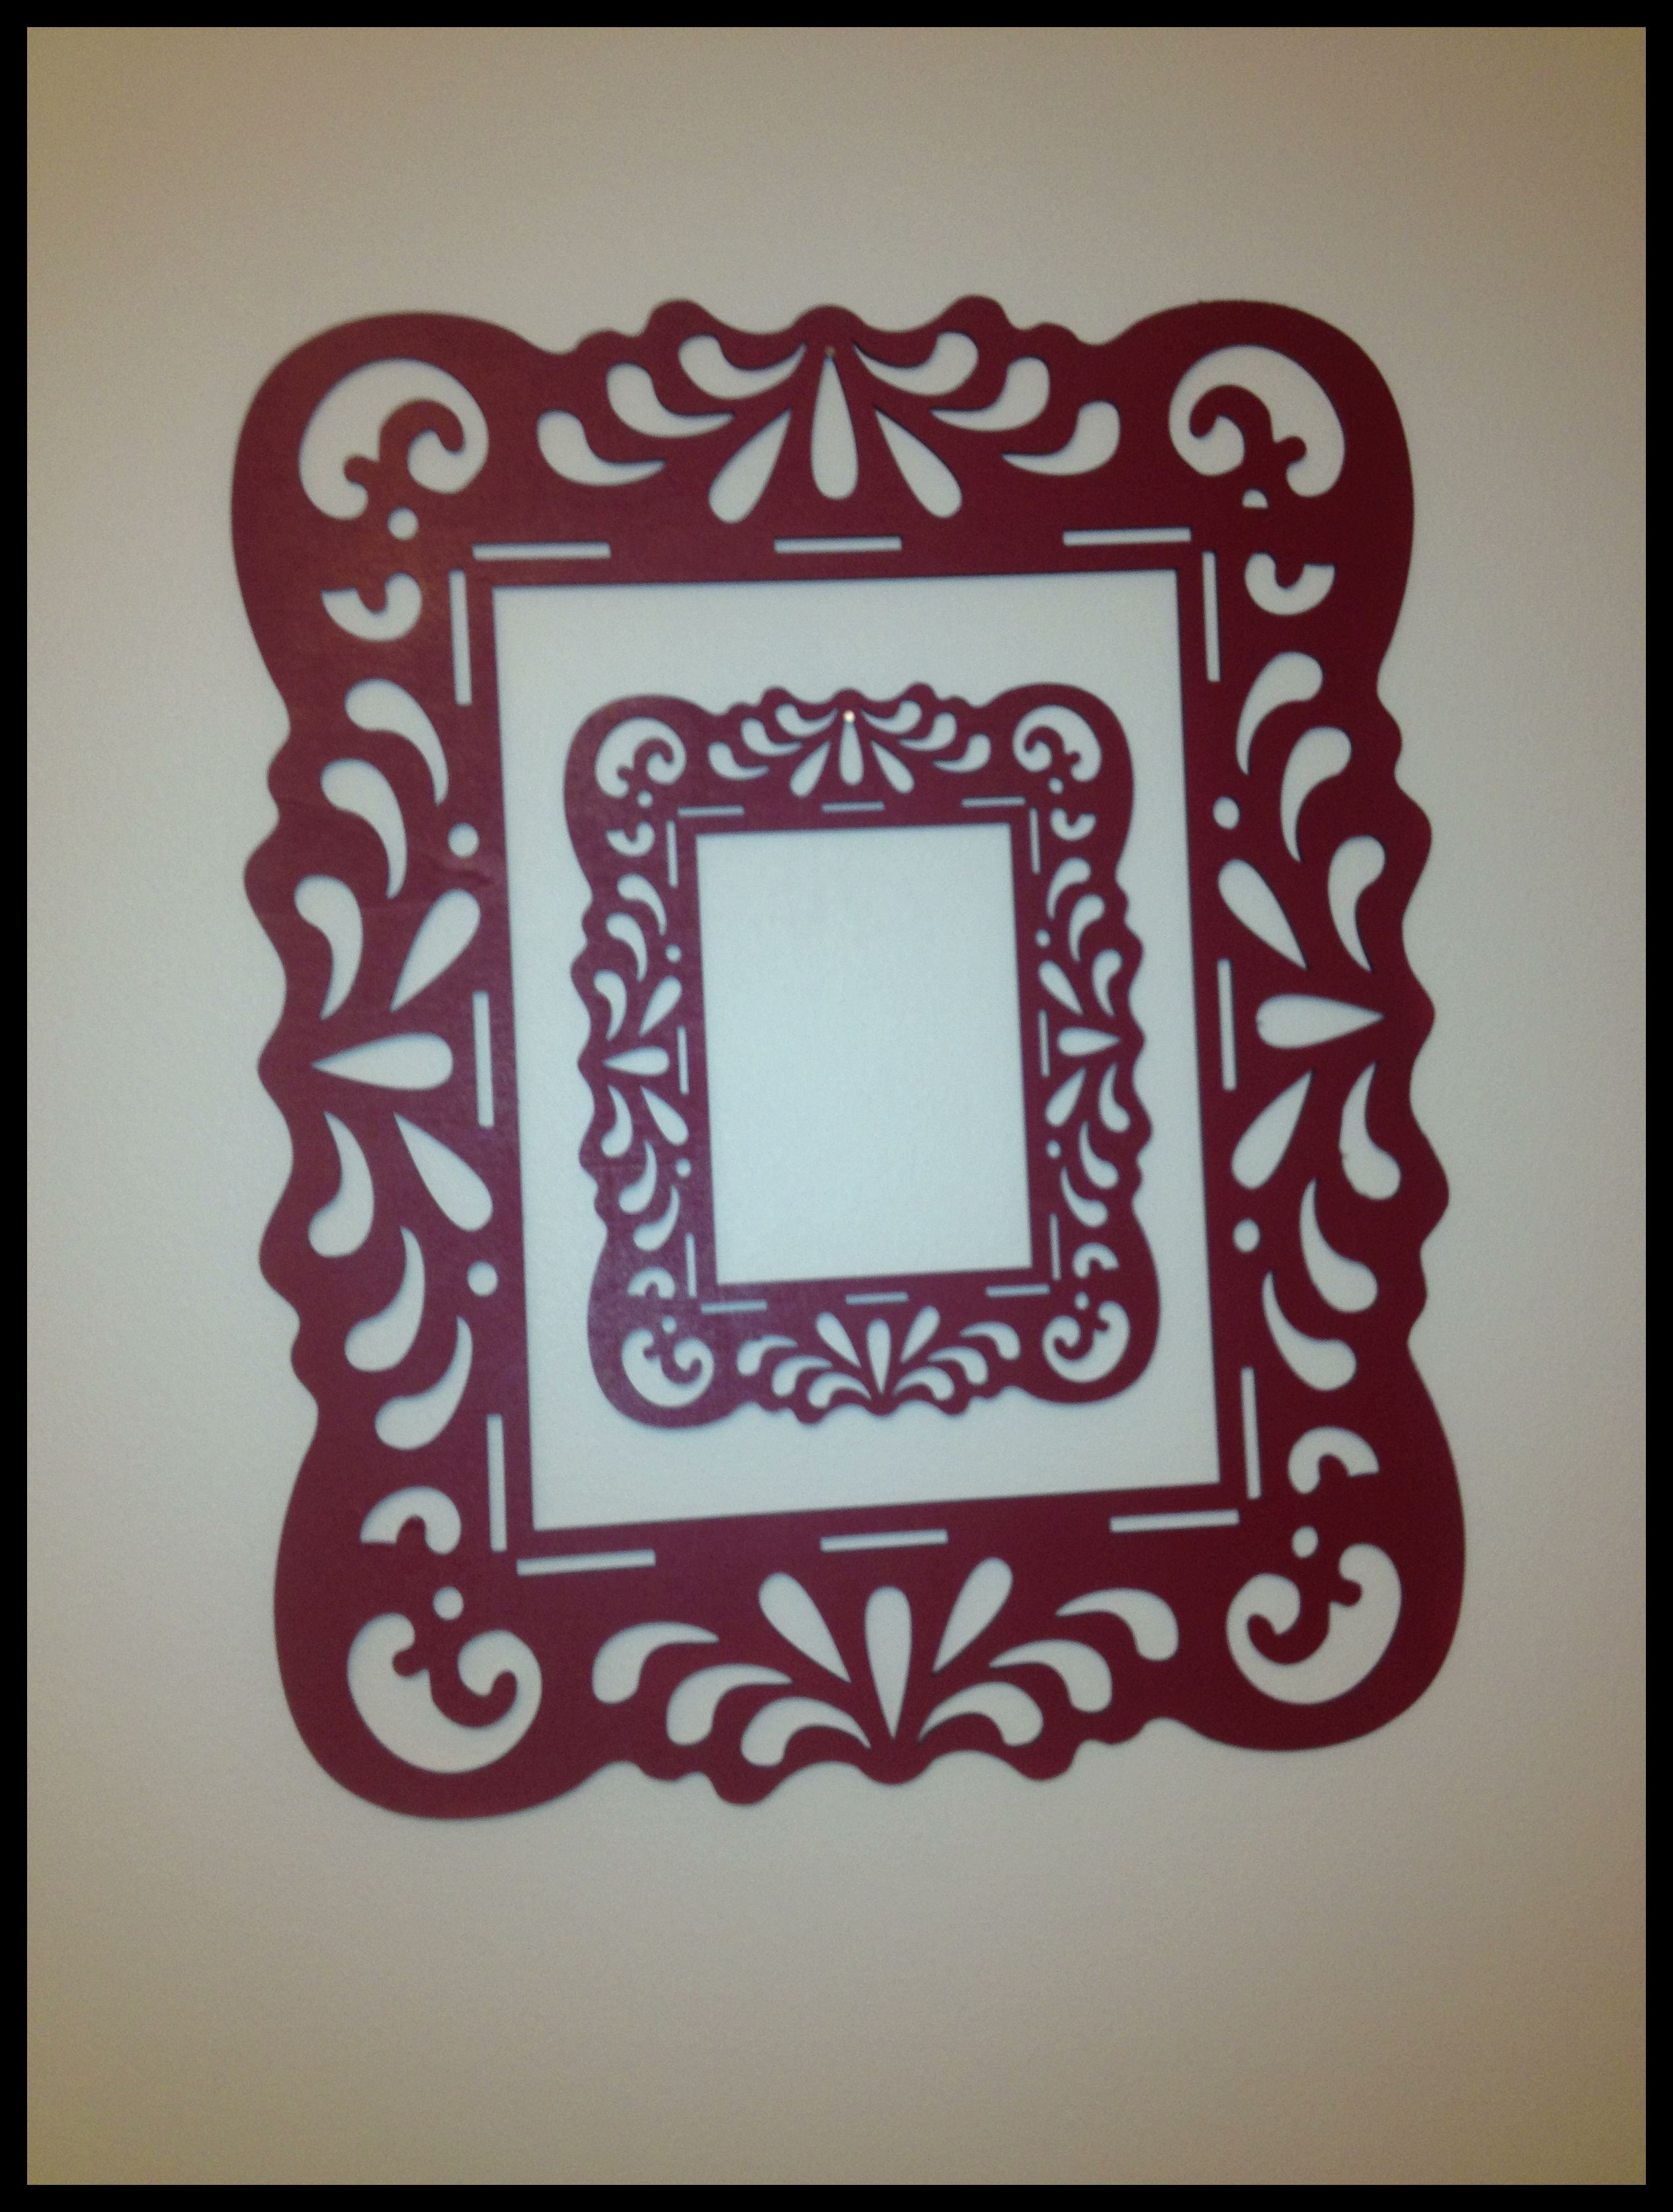 Easy Diy Wall Art Take Any Decorative Wooden Frame From